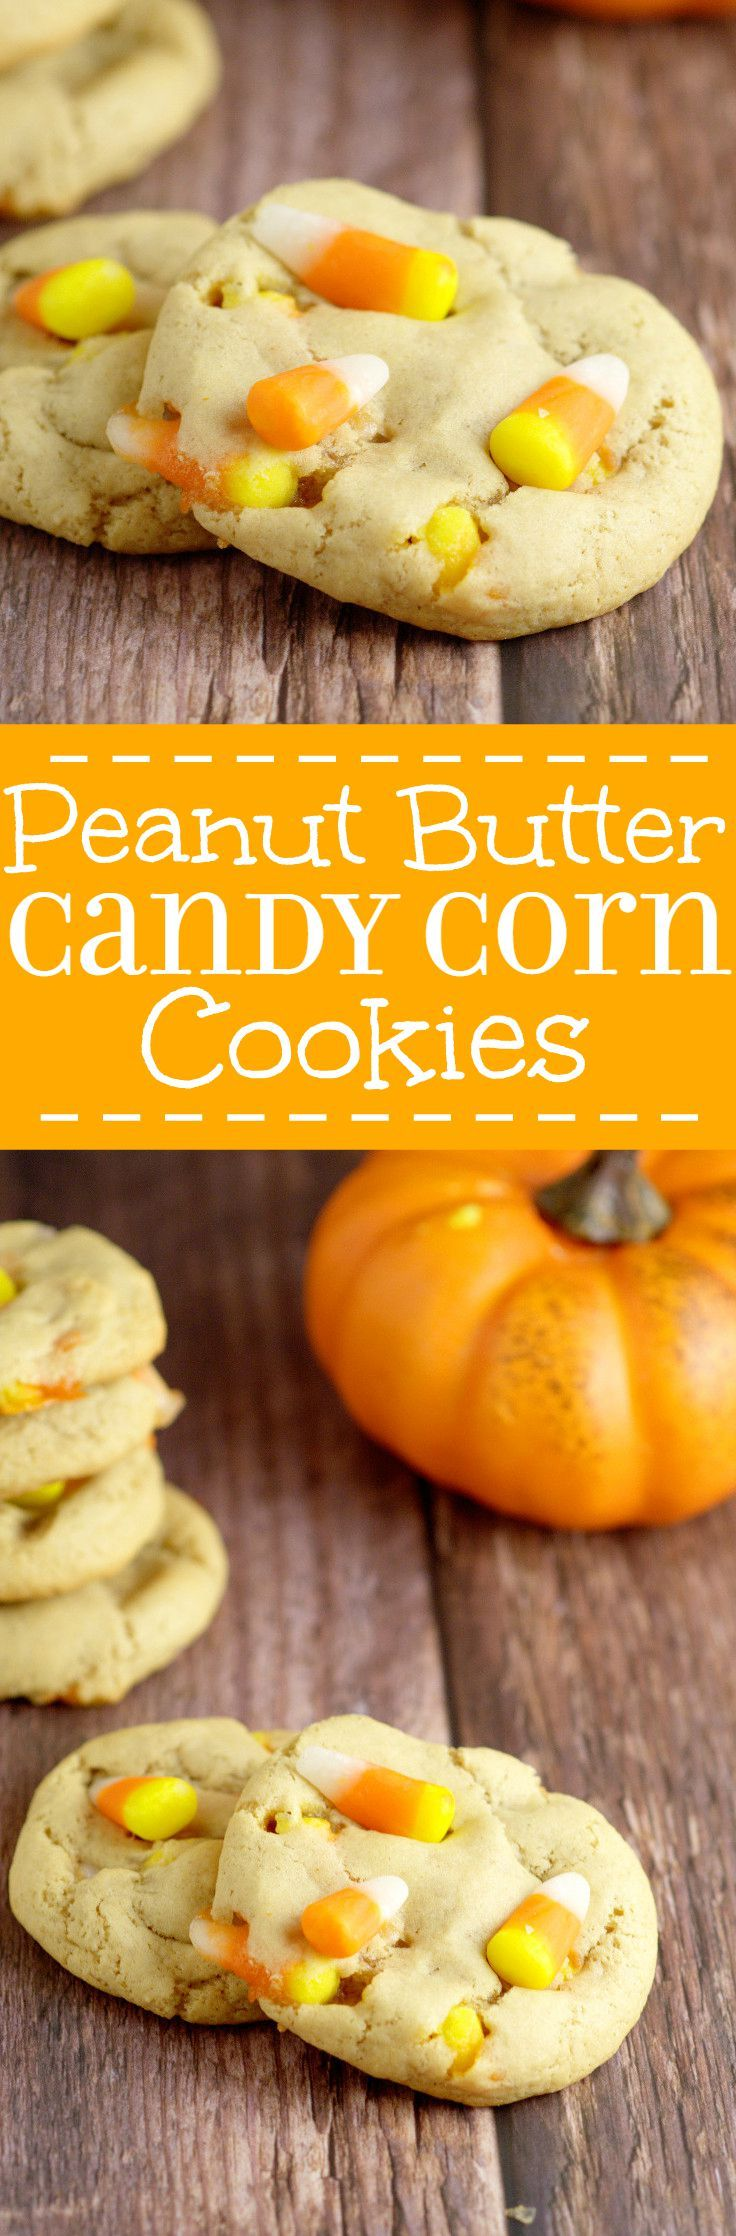 Peanut Butter Candy Corn Cookies take the rich creaminess of peanut butter and combine it with the vanilla and honey sweetness of classic candy corn to make a perfect and delicious Fall and Halloween treat for kids, party, and everyone!  #snickerdoodlesunday